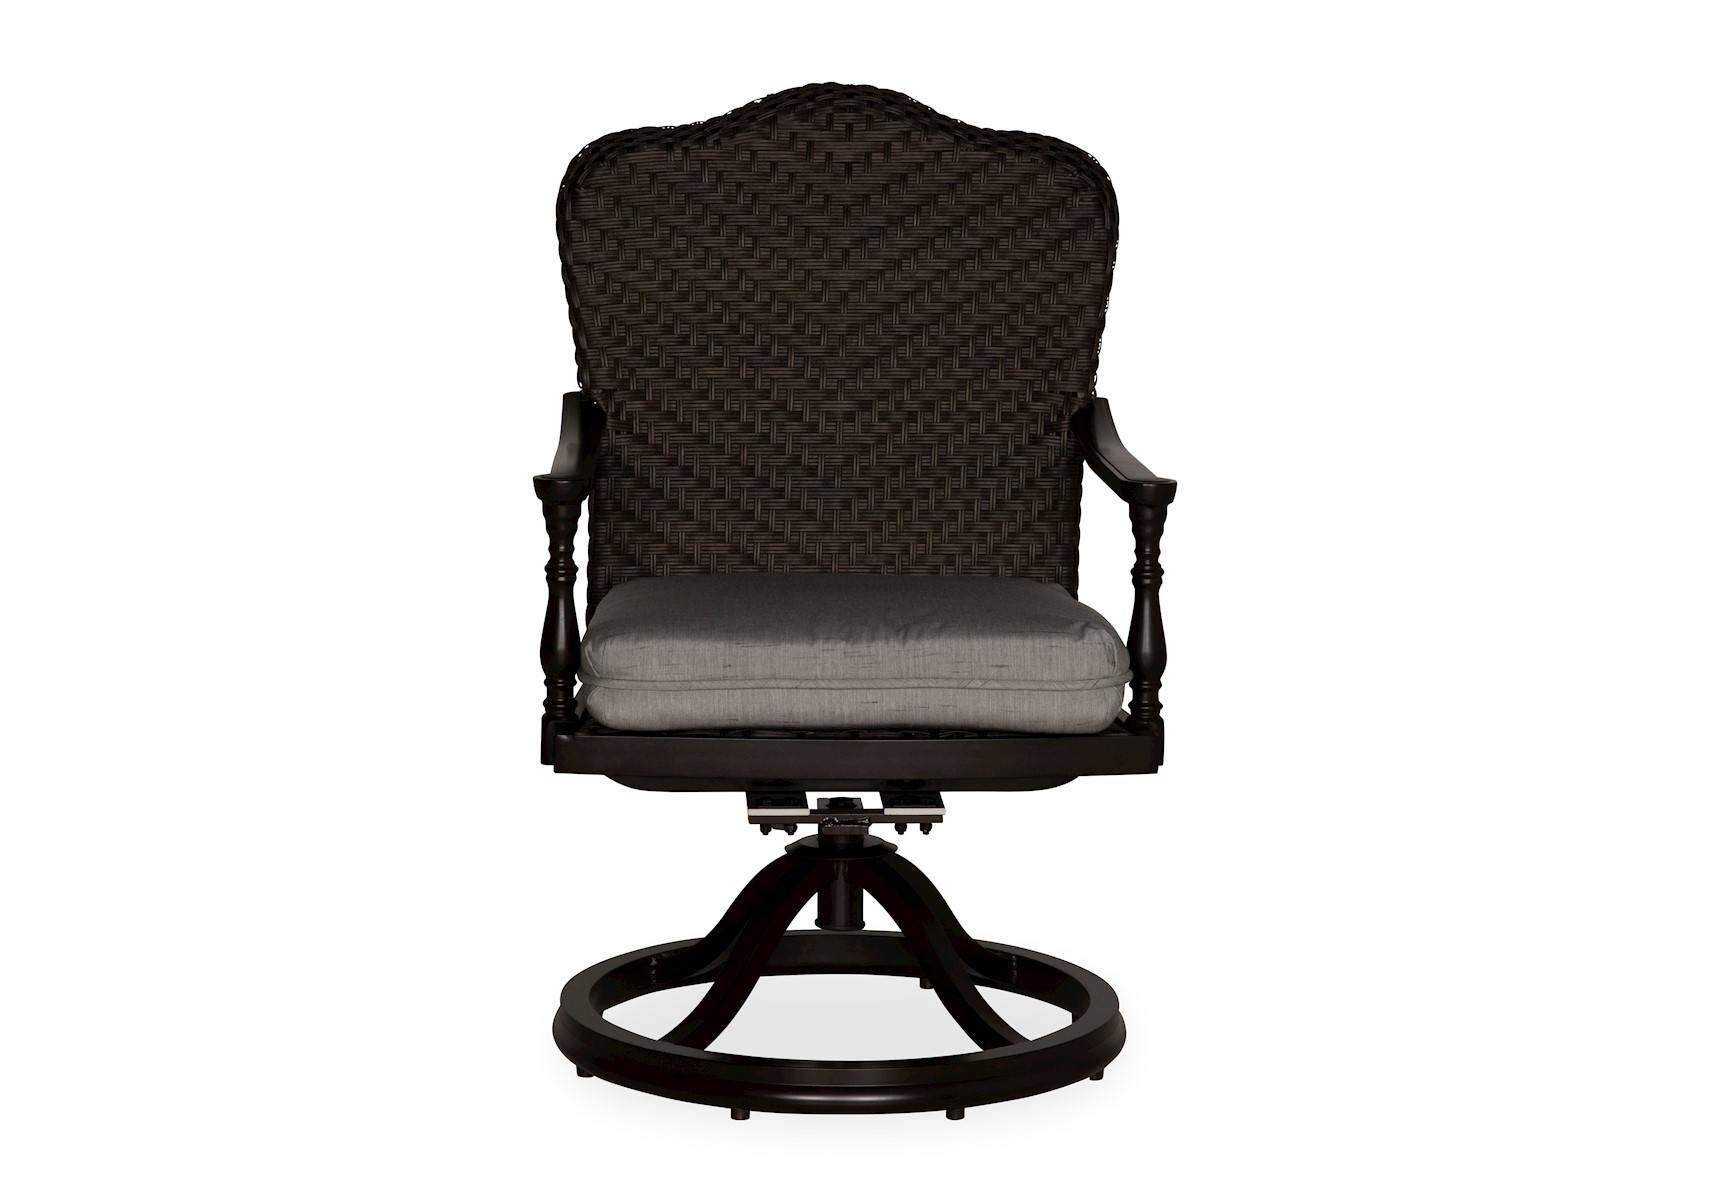 Astonishing Lacks Bungalow Outdoor Swivel Chair Caraccident5 Cool Chair Designs And Ideas Caraccident5Info